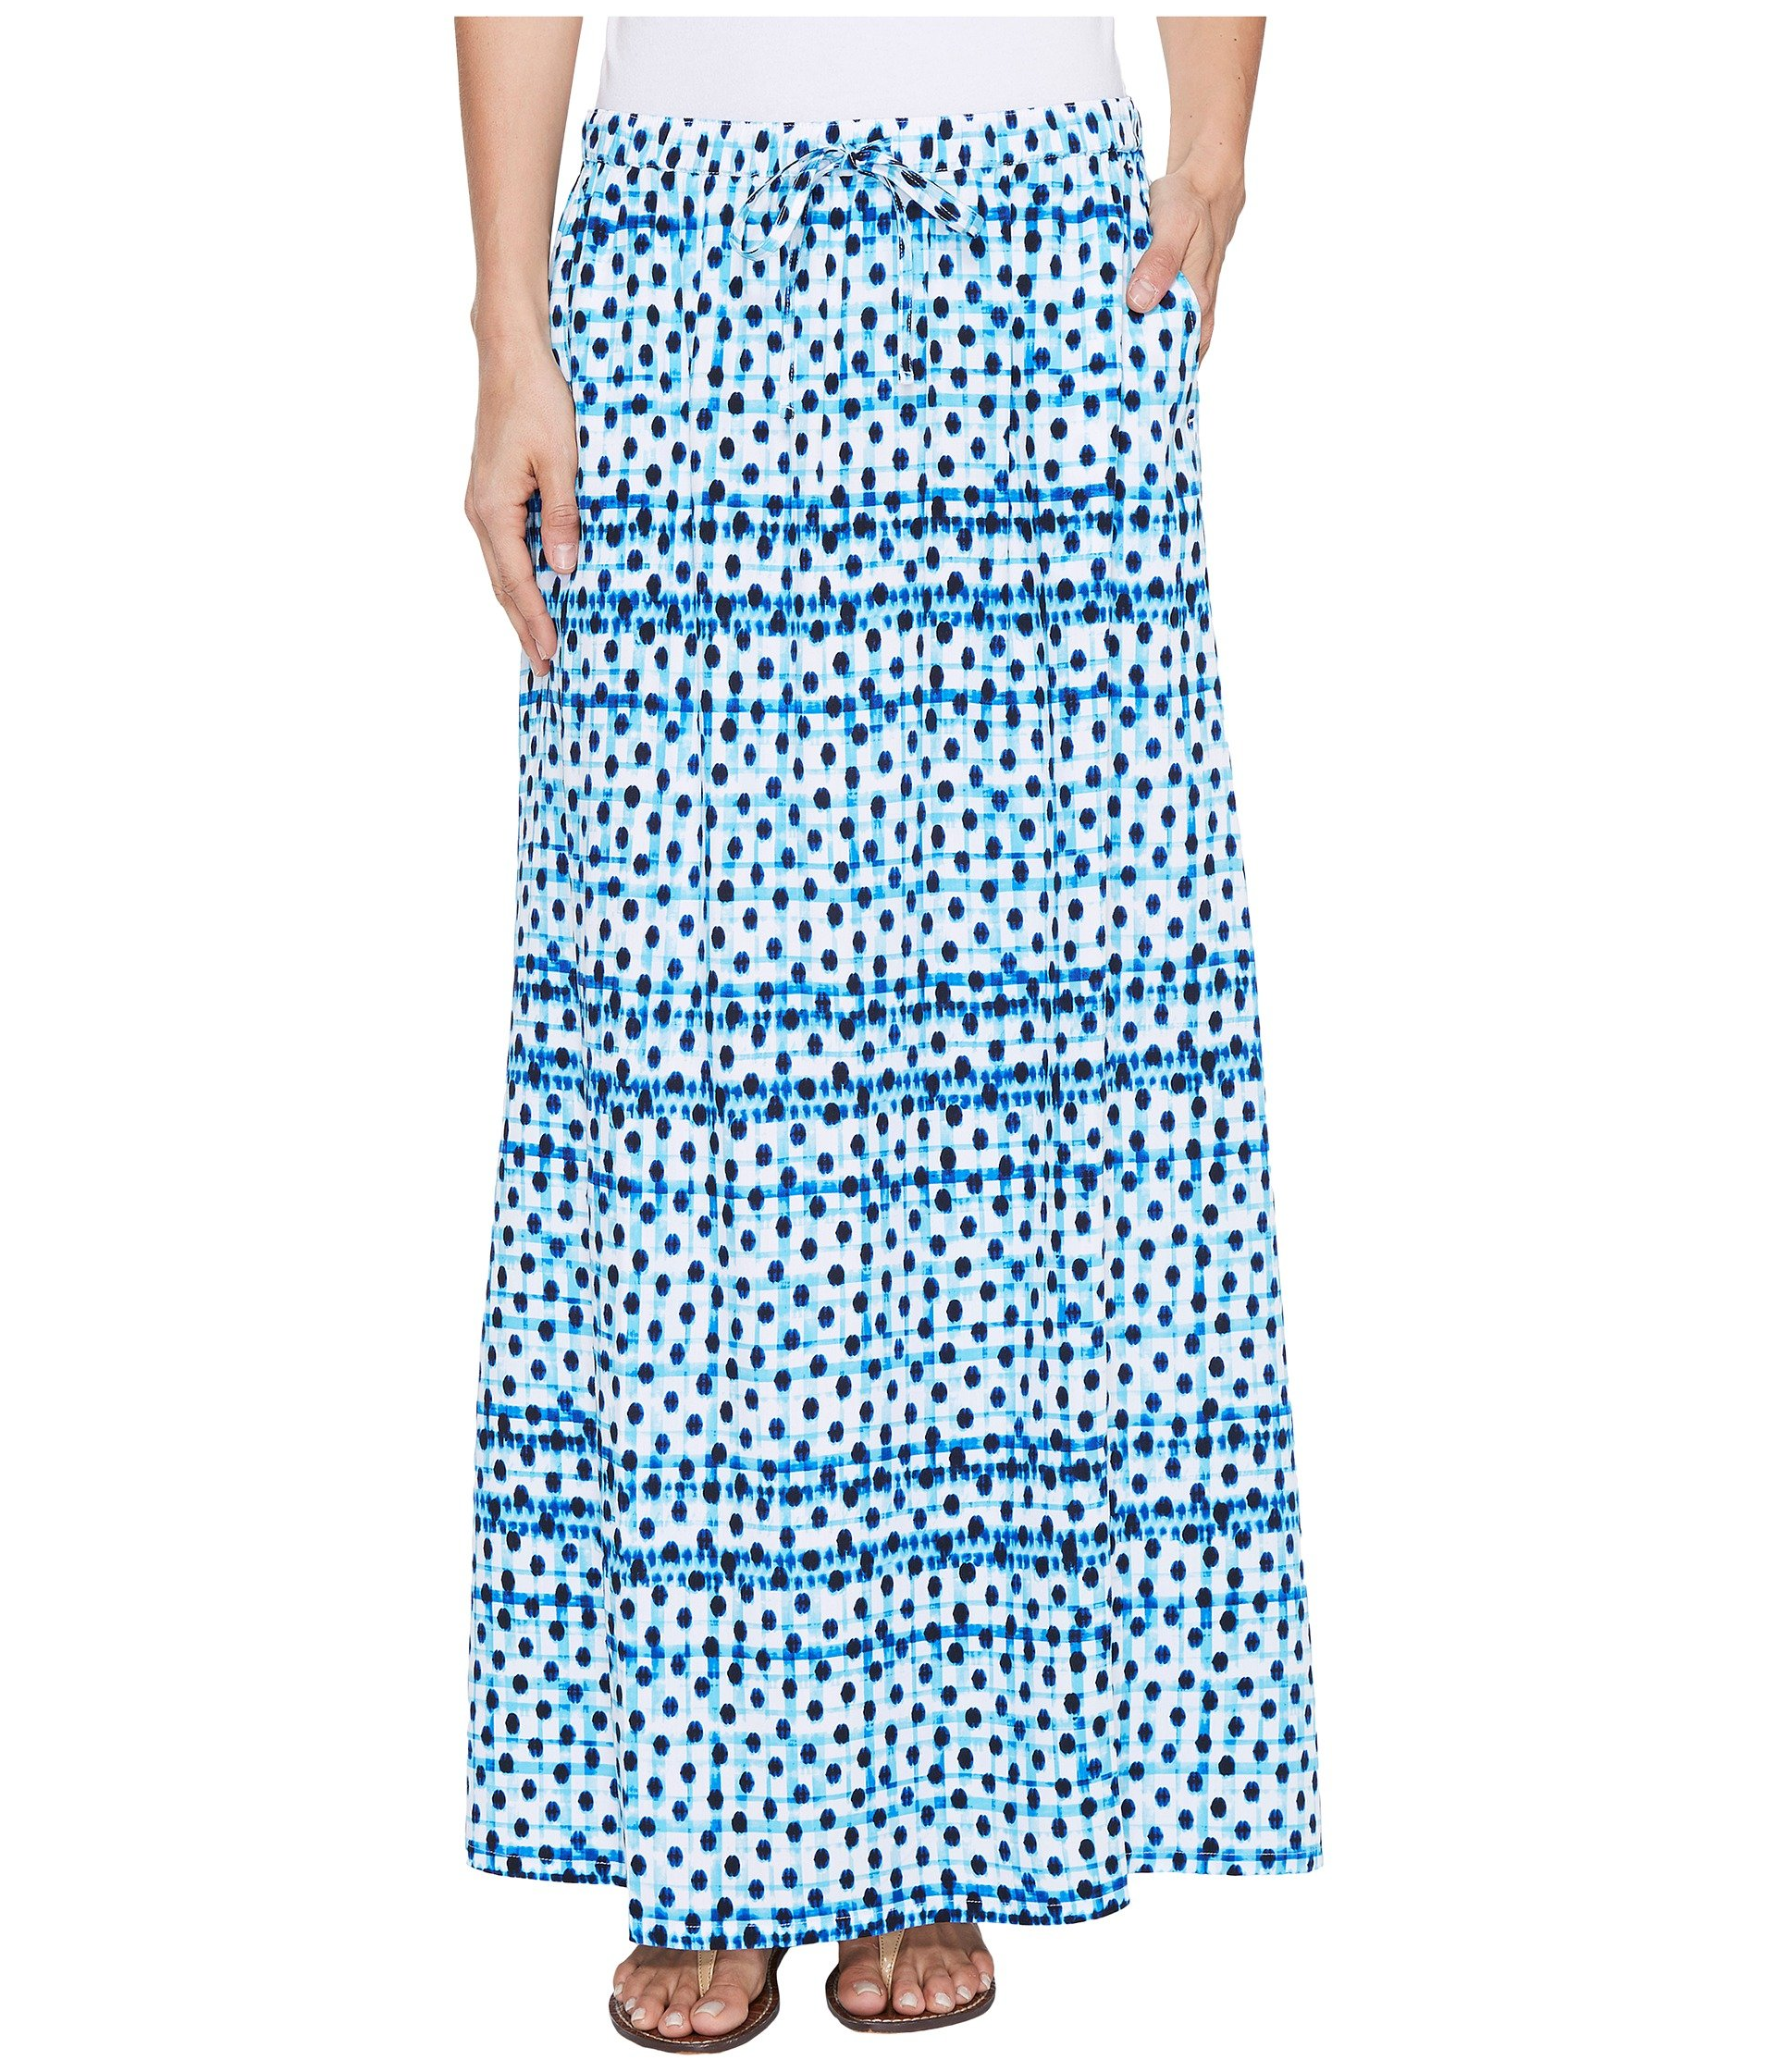 Dot Matrix Maxi Skirt